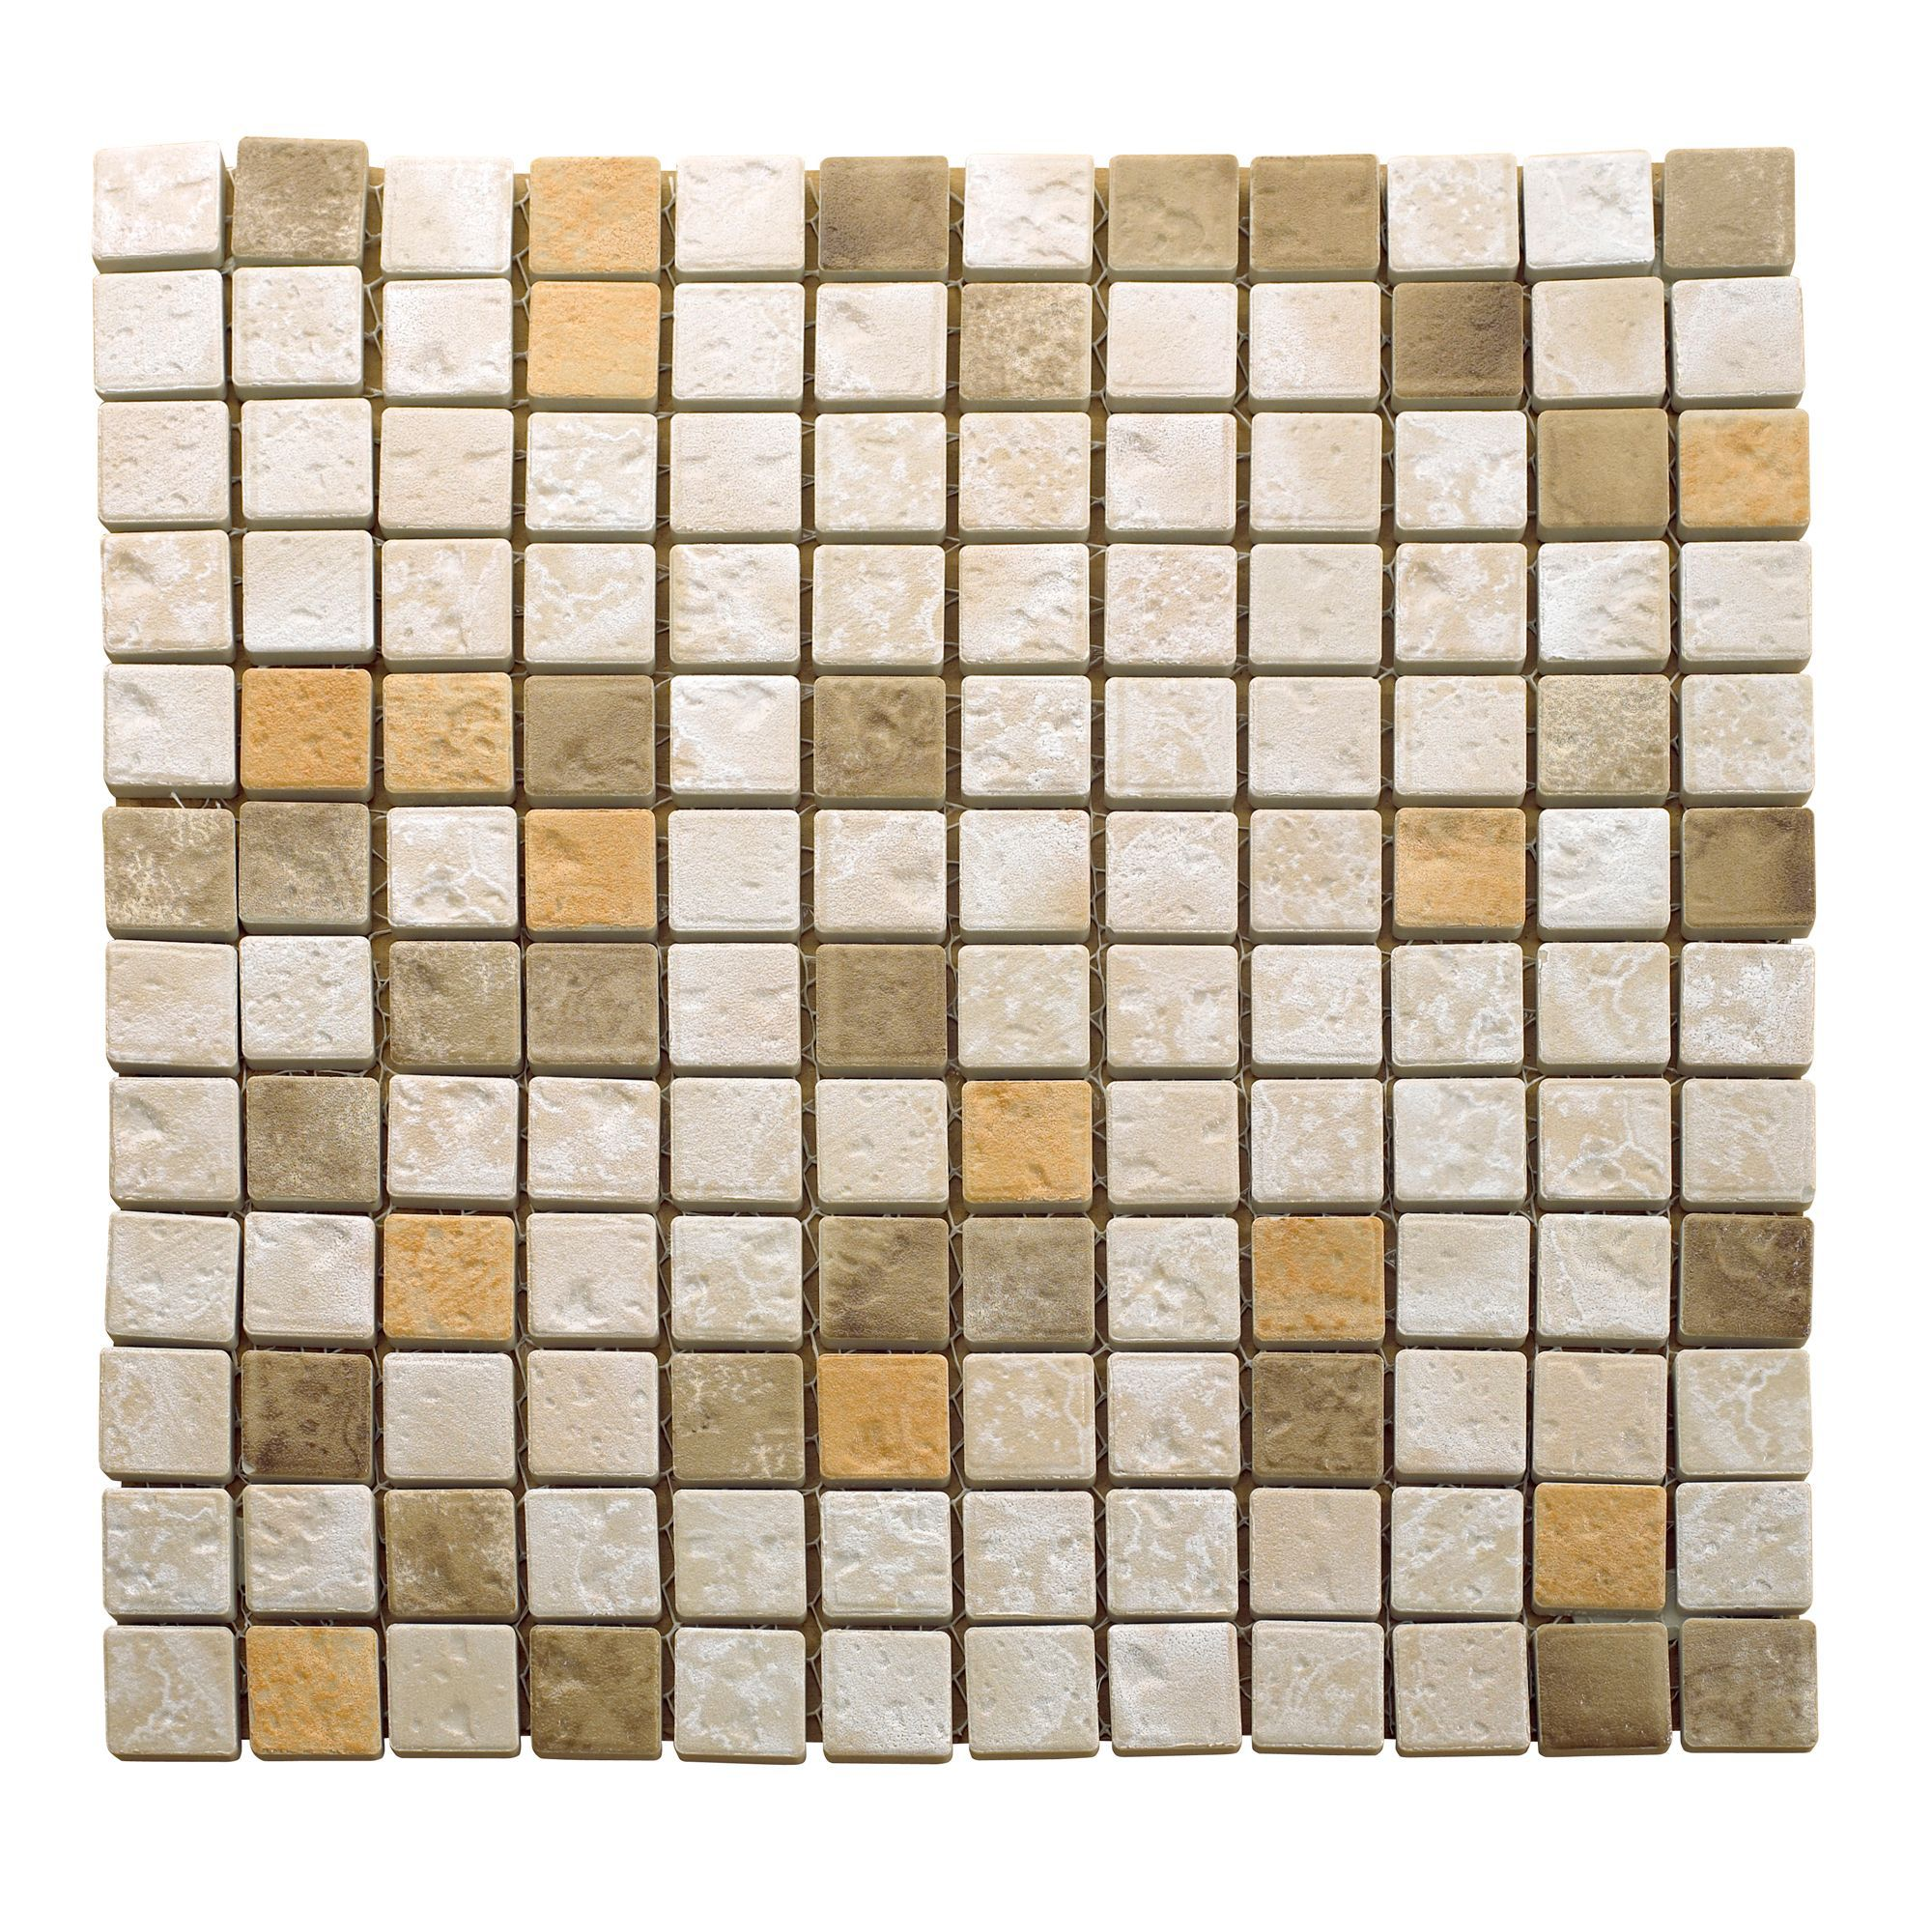 Green Glass Marble Mosaic Tile L 300mm W 300mm: Beige Mosaic Tile